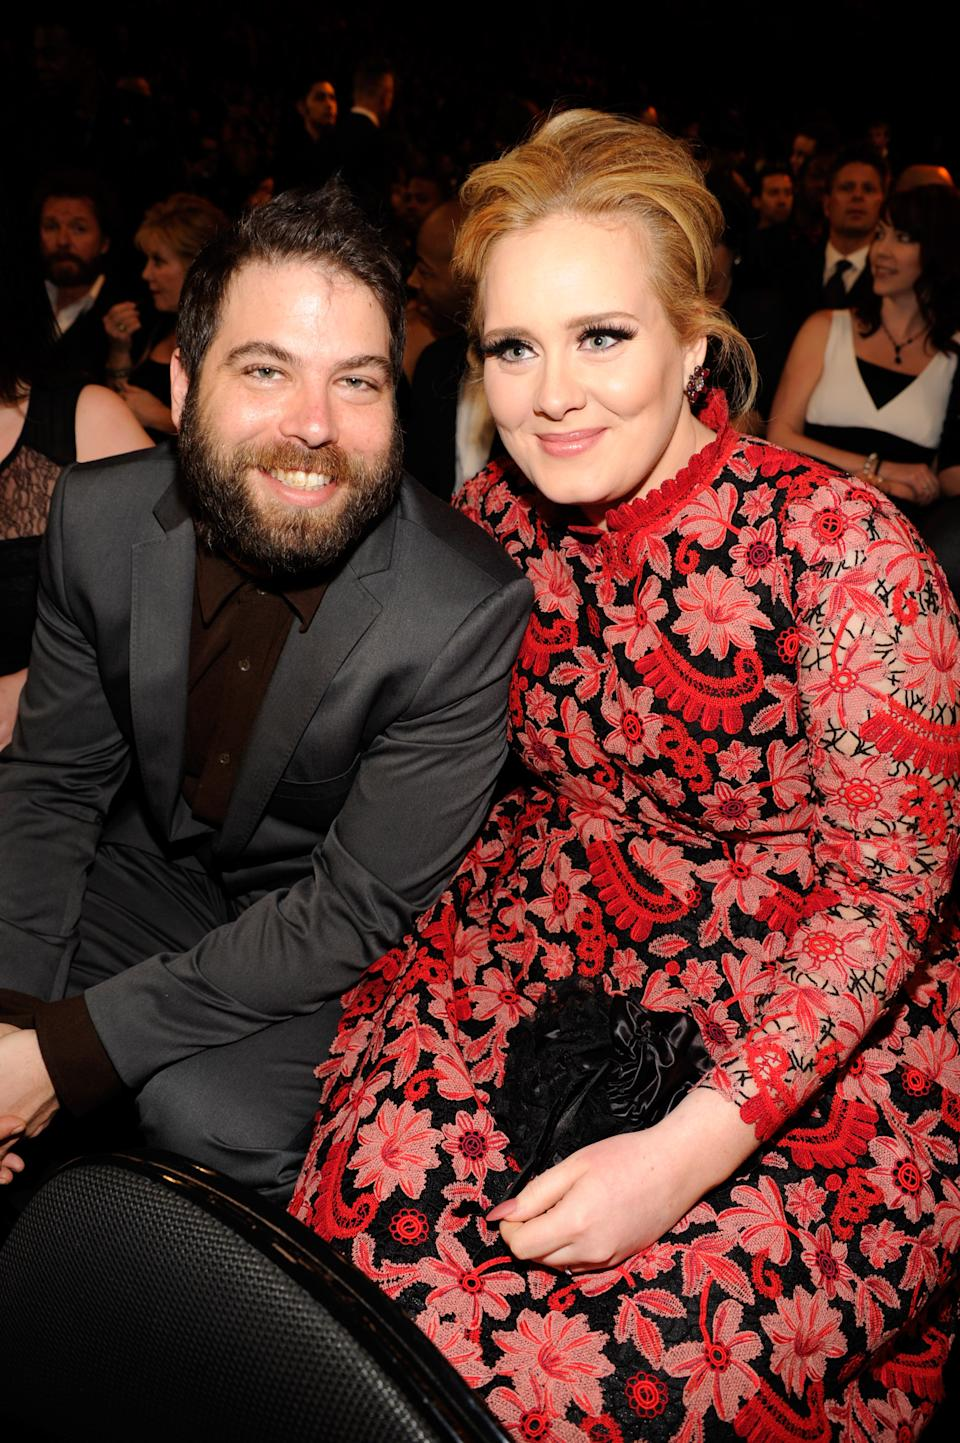 Adele (R) and Simon Konecki attend the 55th Annual GRAMMY Awards at STAPLES Center on February 10, 2013 in Los Angeles, California.  (Photo by Kevin Mazur/WireImage)